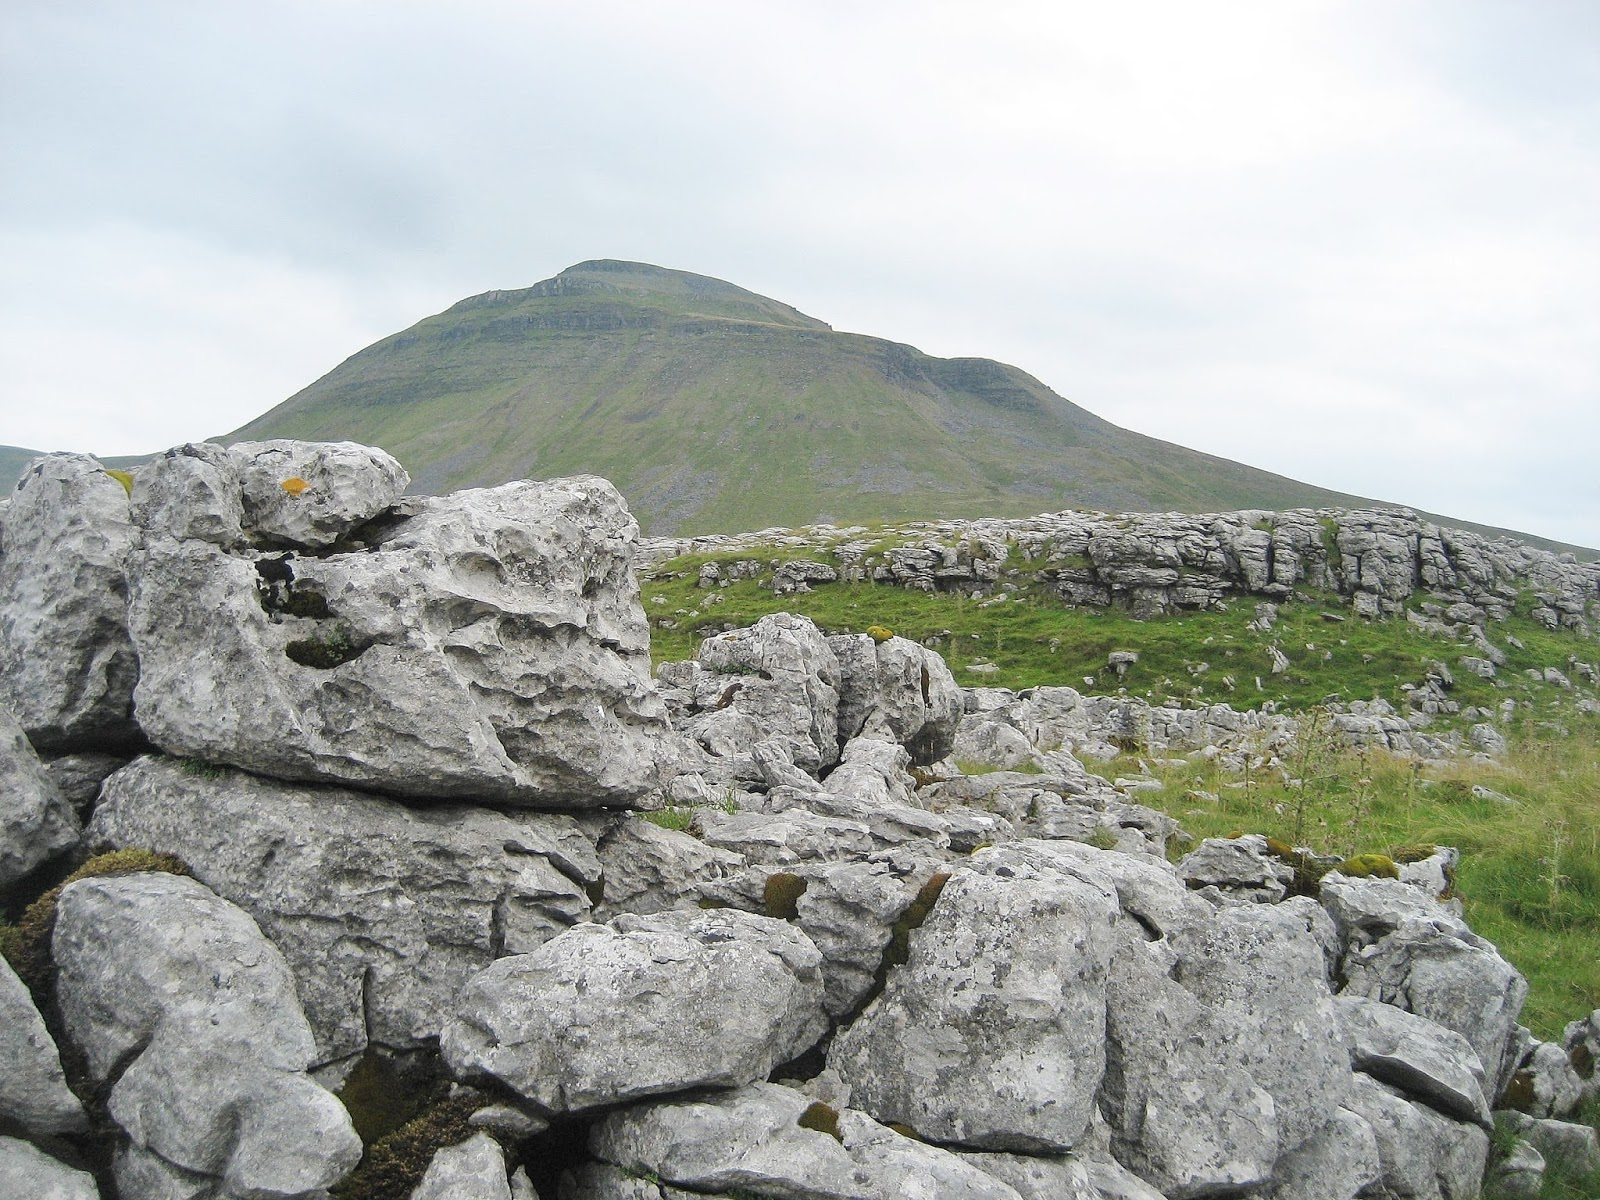 Ingleborough sitting on its plinth of Great Scar Limestone. Stephen Oldfield